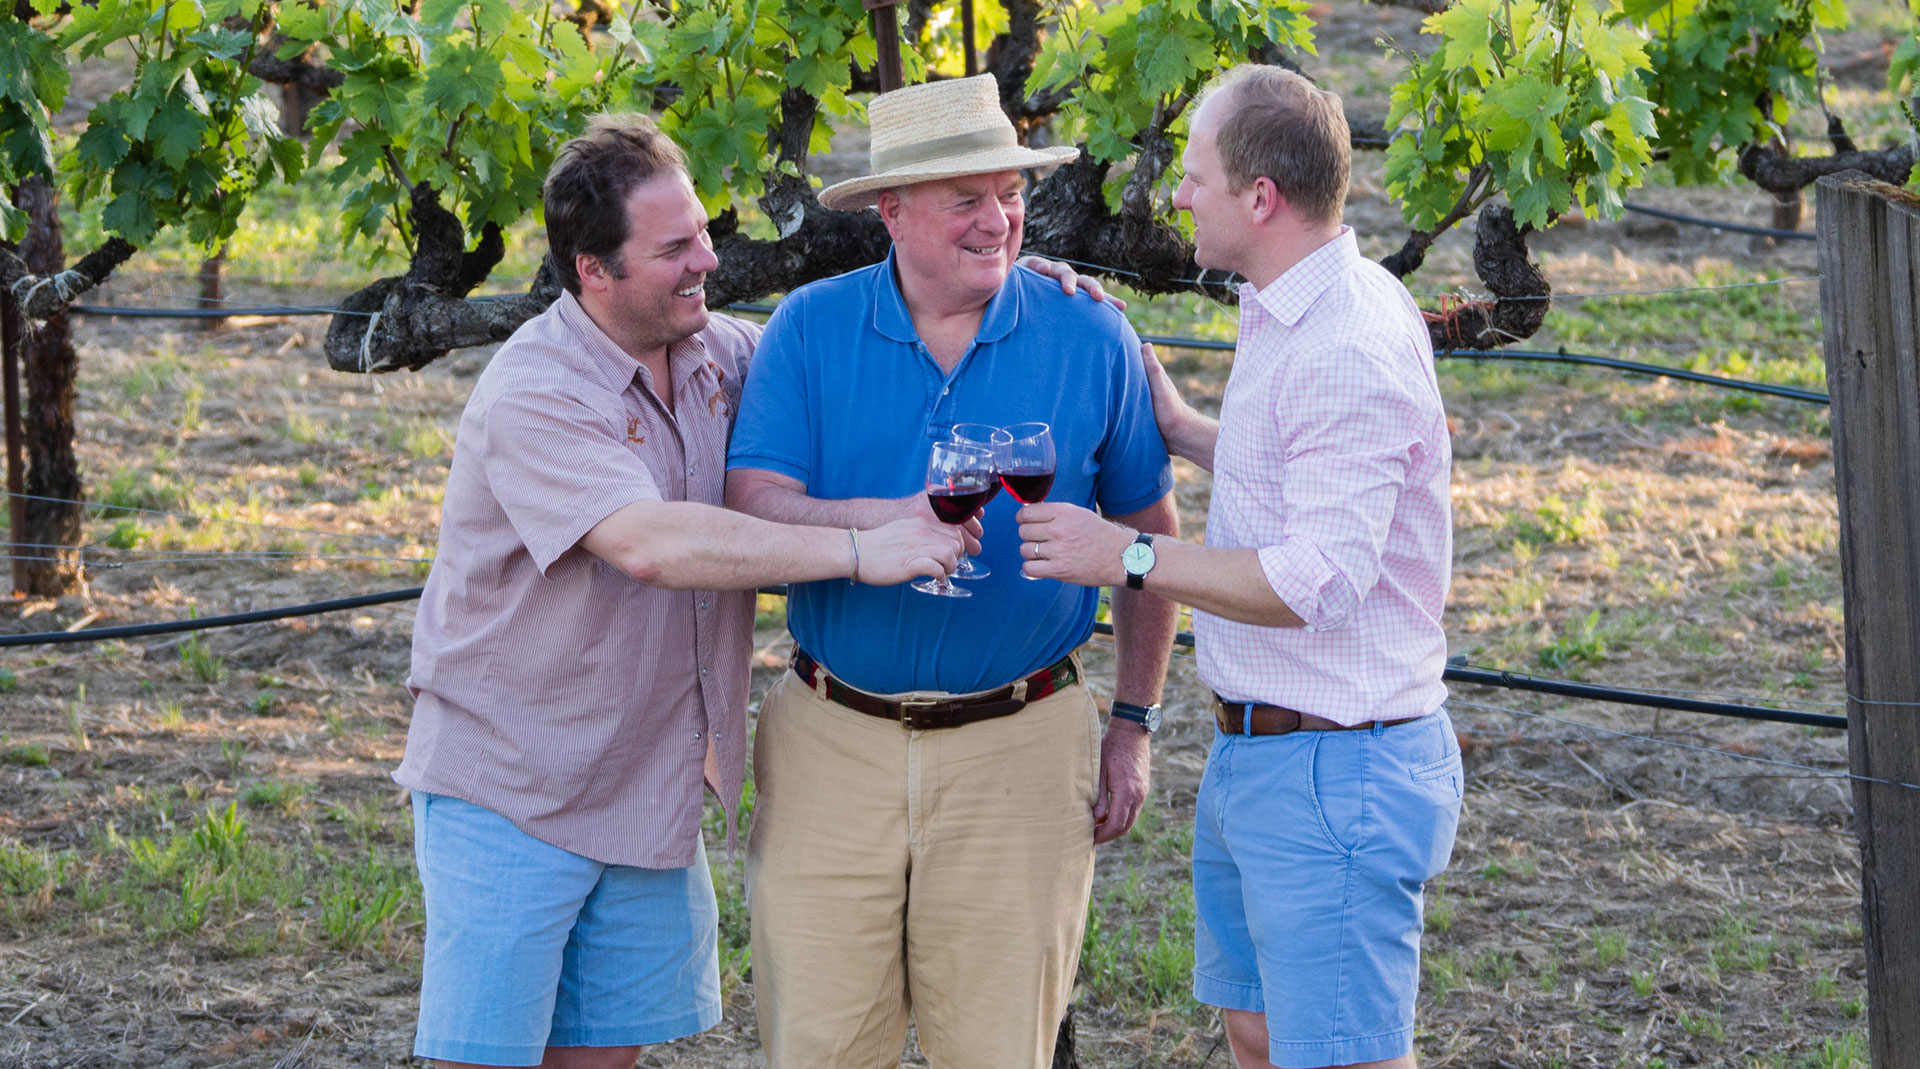 Joe Donelan toasting wine glasses in vineyard with sons.